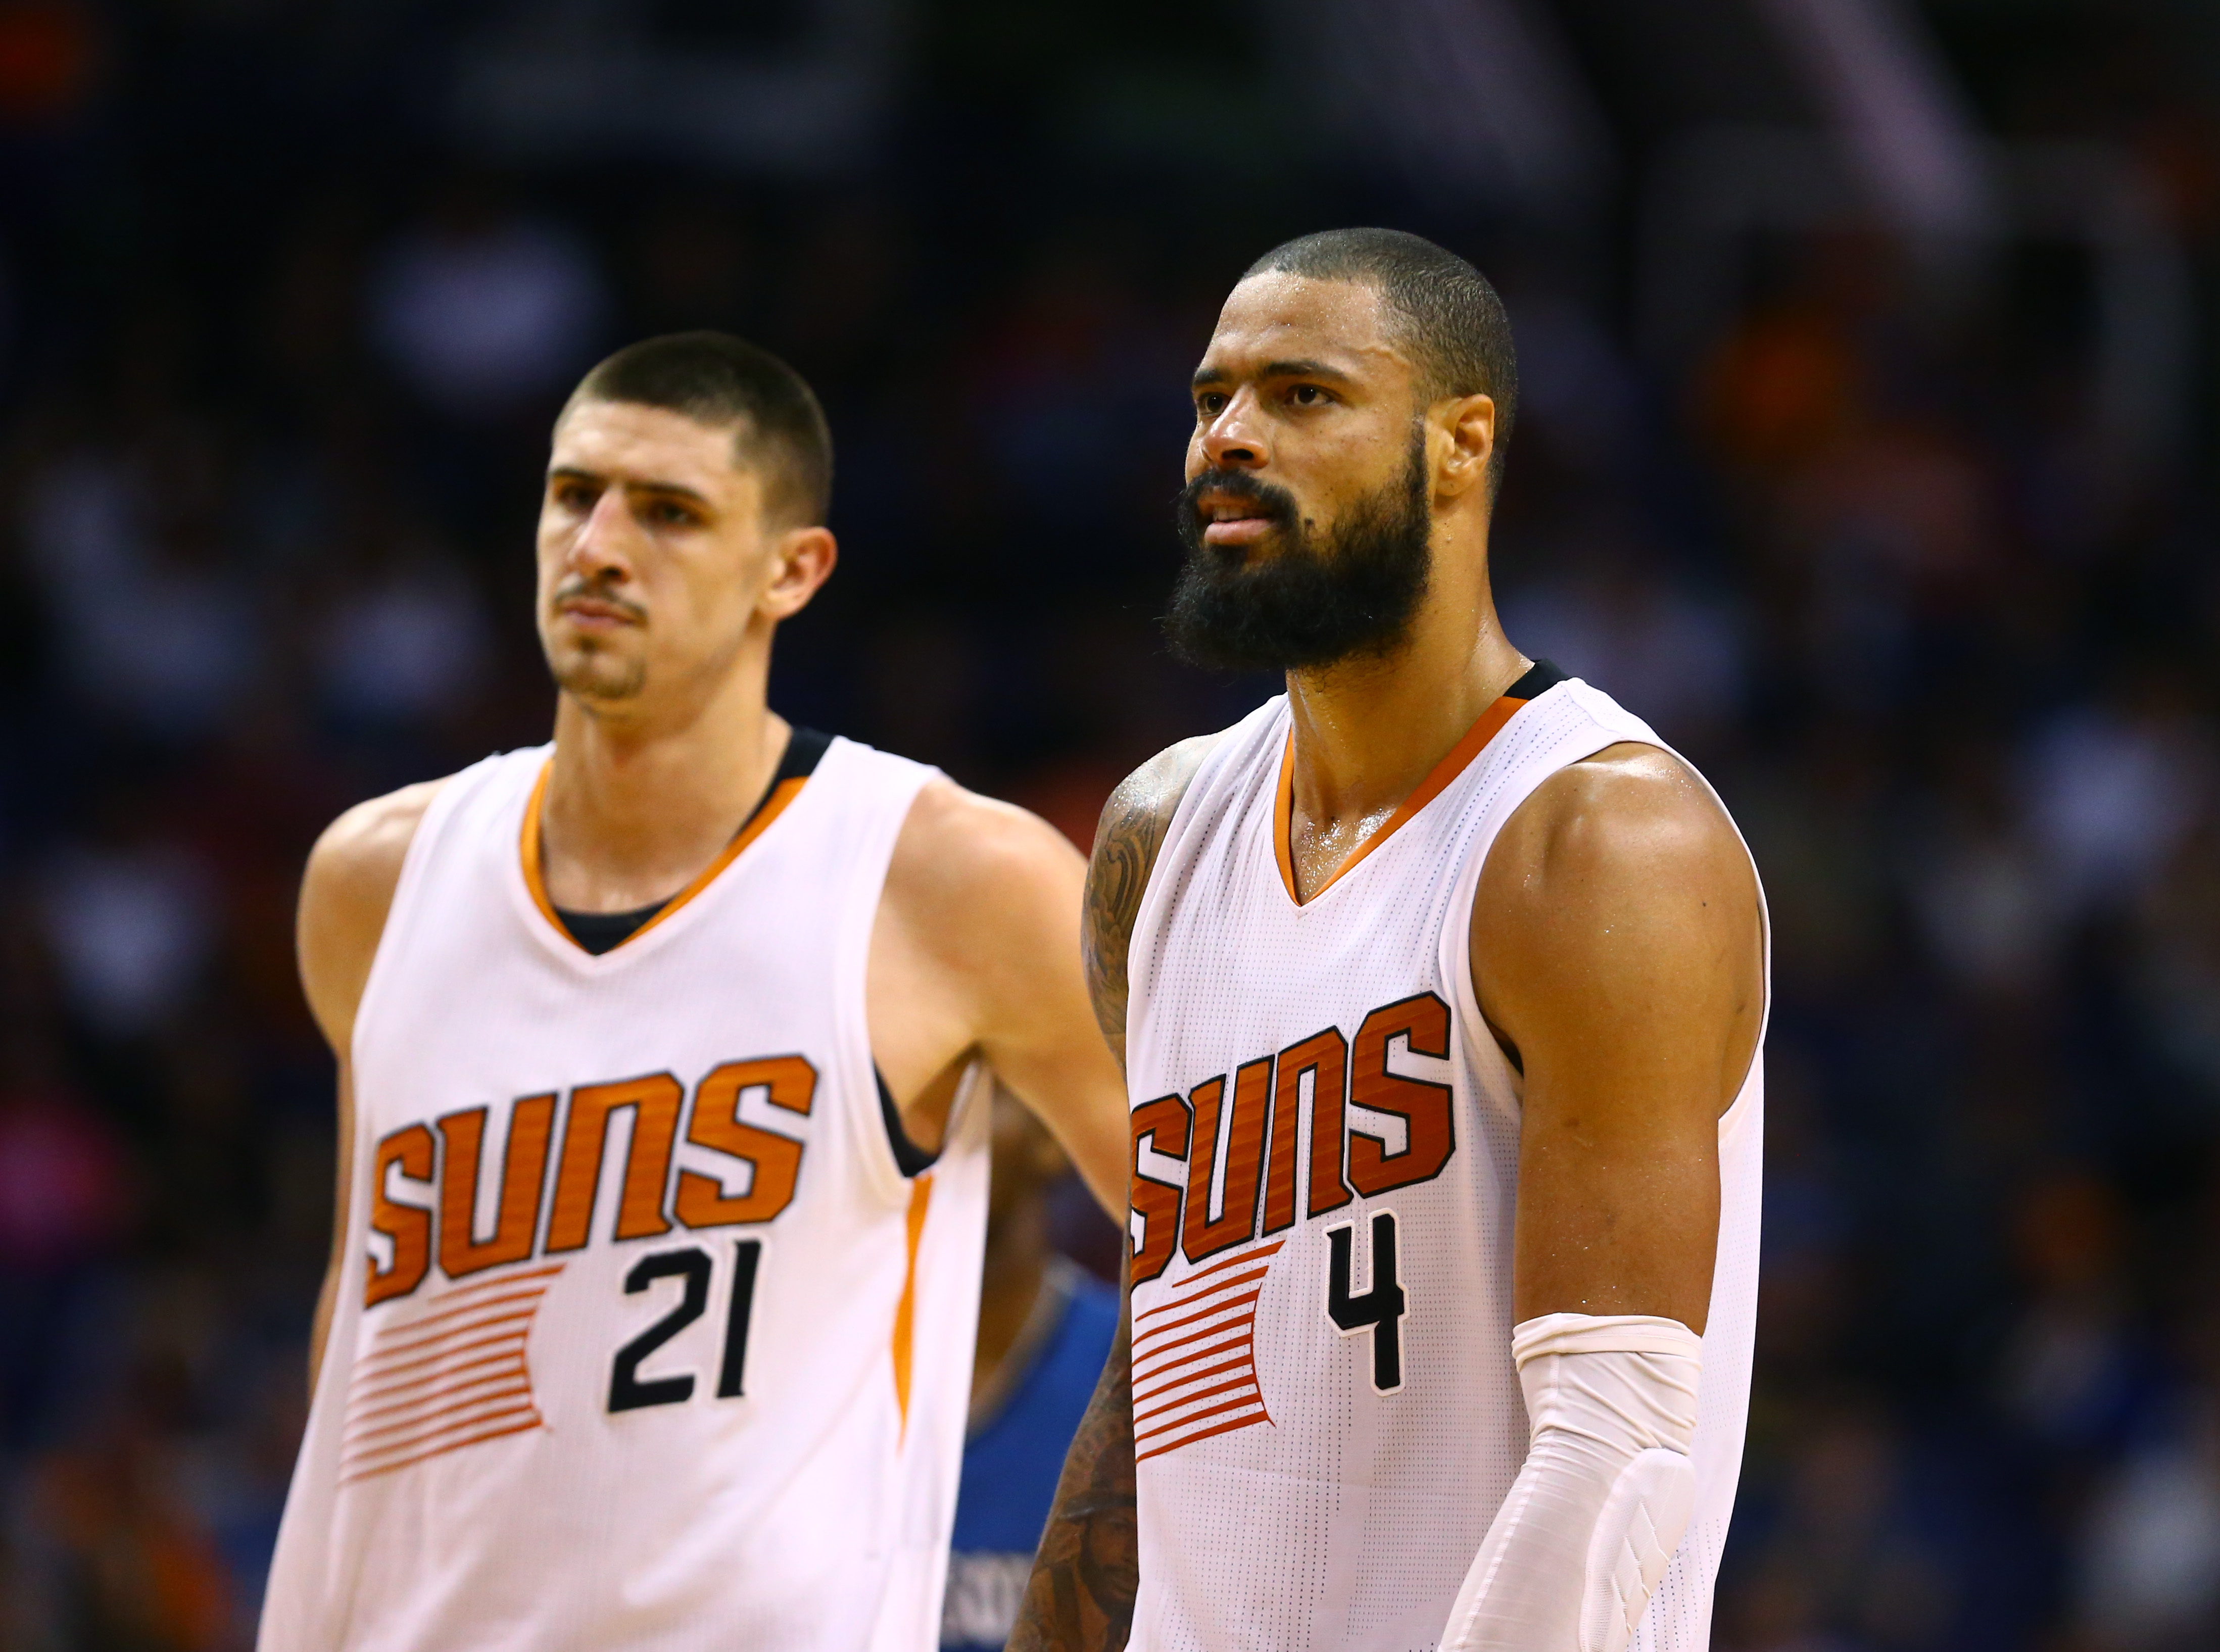 Mar 14, 2016; Phoenix, AZ, USA; Phoenix Suns center Alex Len (21) and Tyson Chandler (4) against the Minnesota Timberwolves at Talking Stick Resort Arena. The Suns defeated the Timberwolves 107-104. Mandatory Credit: Mark J. Rebilas-USA TODAY Sports